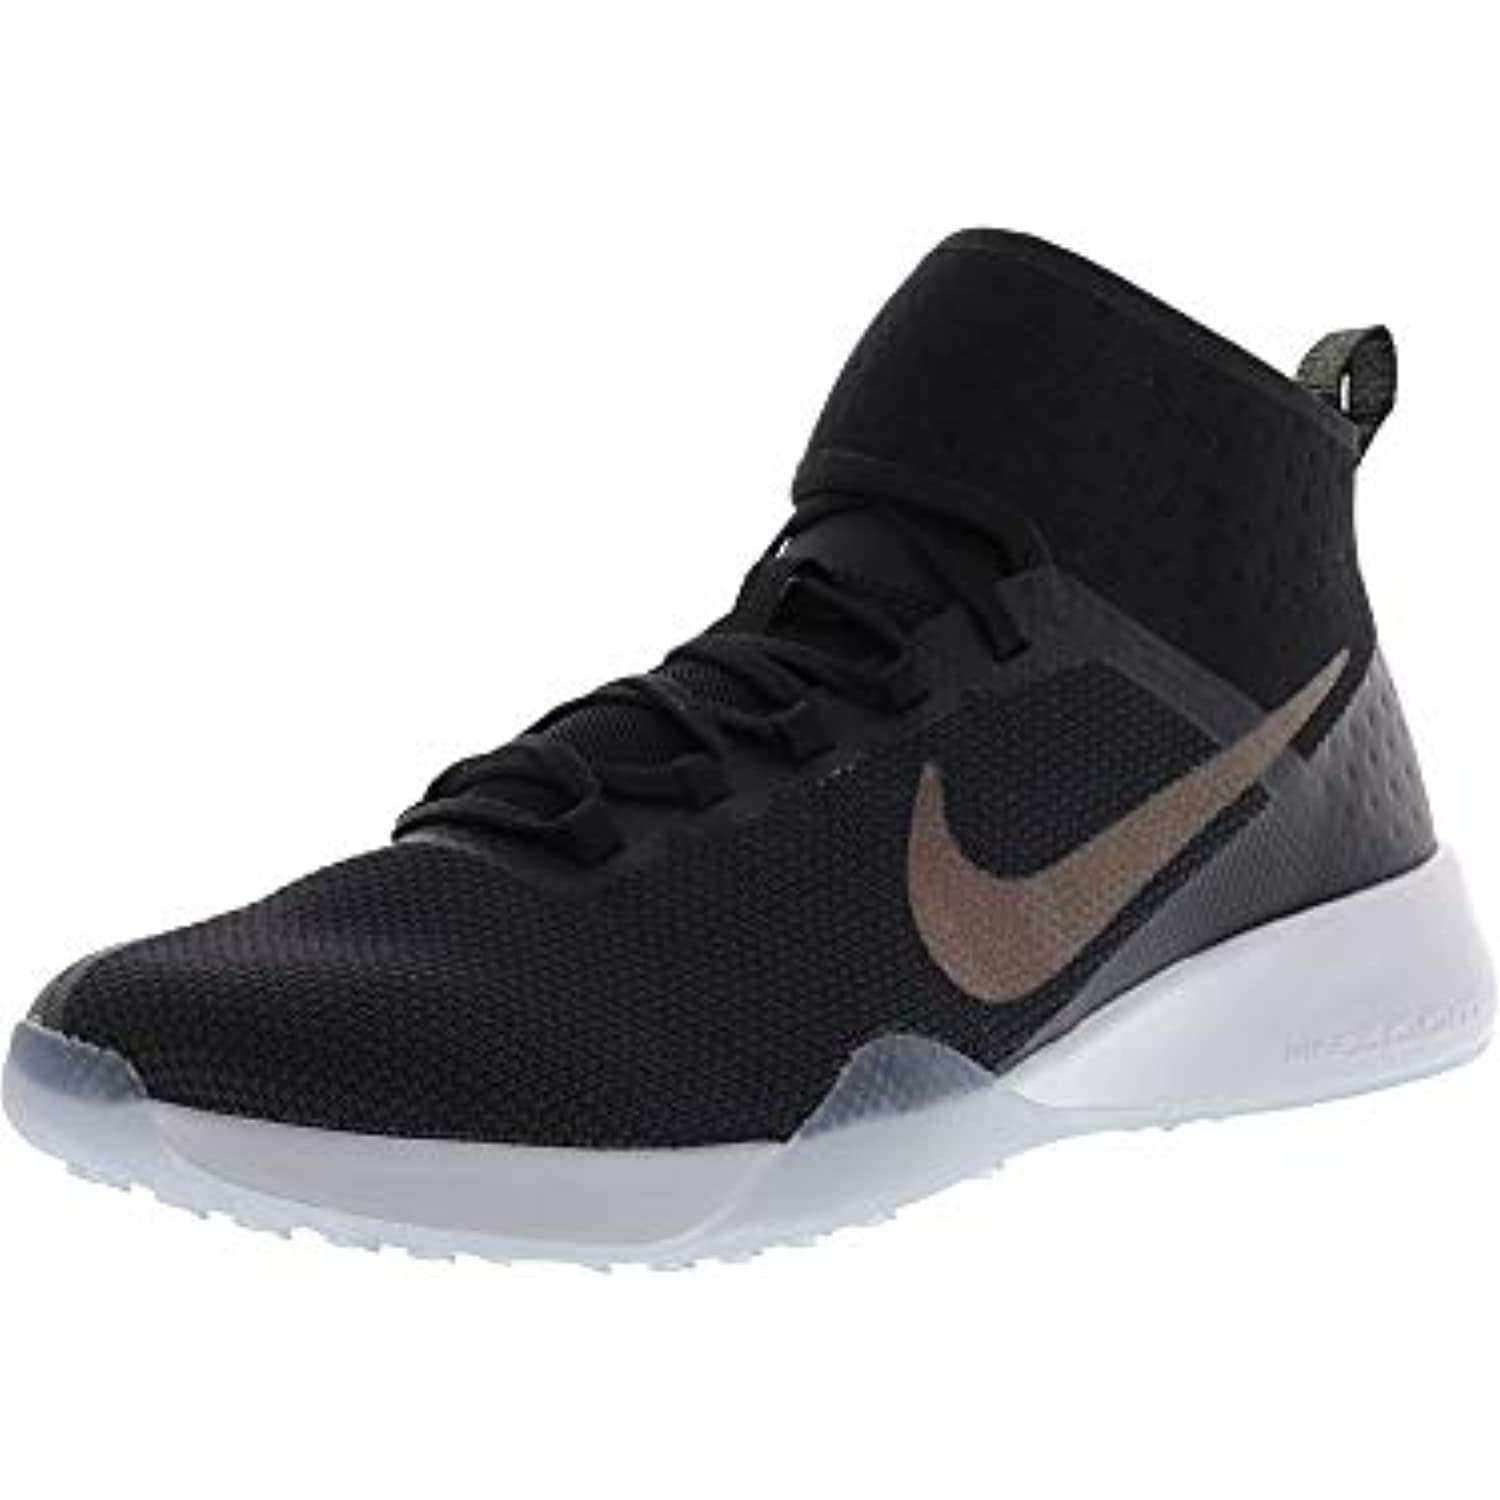 NIKE Femmes Air Zoom Strong Chaussures 2 Metallic Running 922876 Sneakers Chaussures Strong - B06XMRBLB1 - 473e38